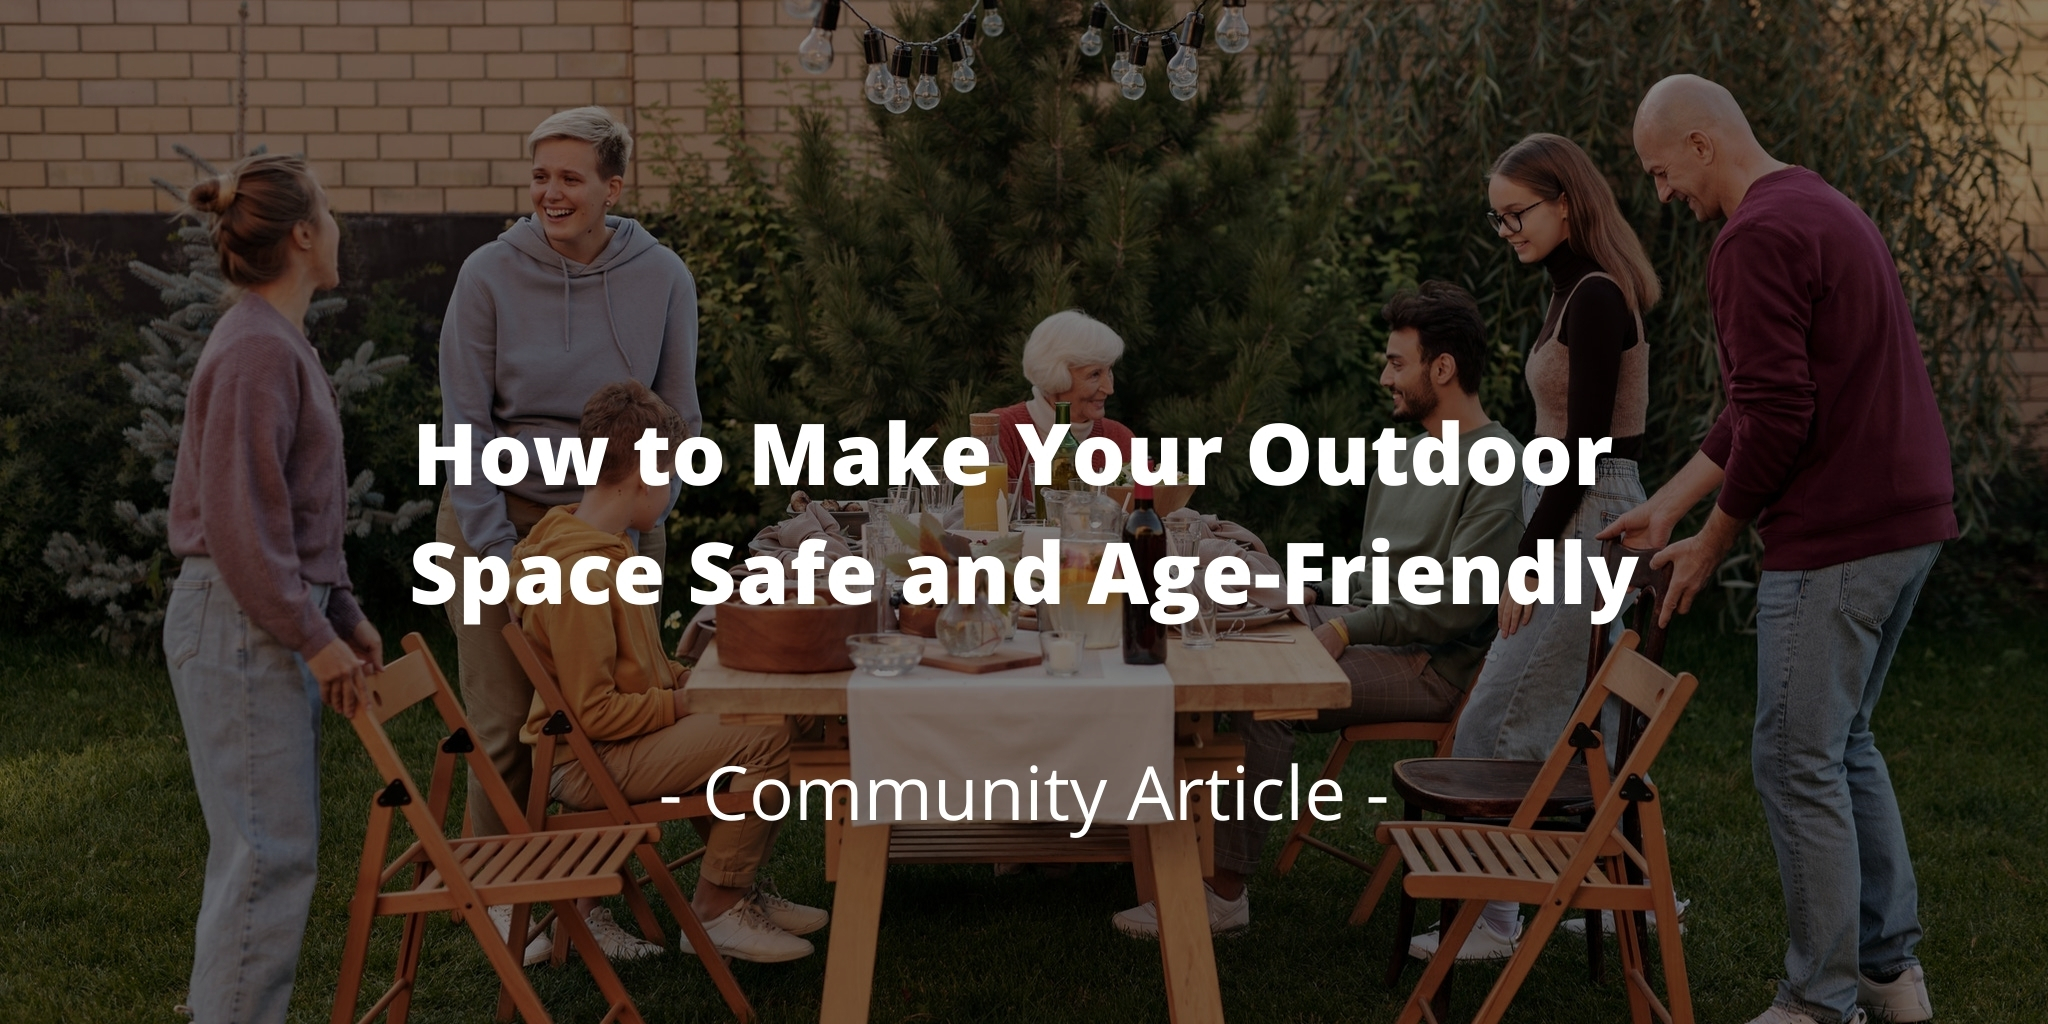 How to Make Your Outdoor Space Safe and Age-Friendly